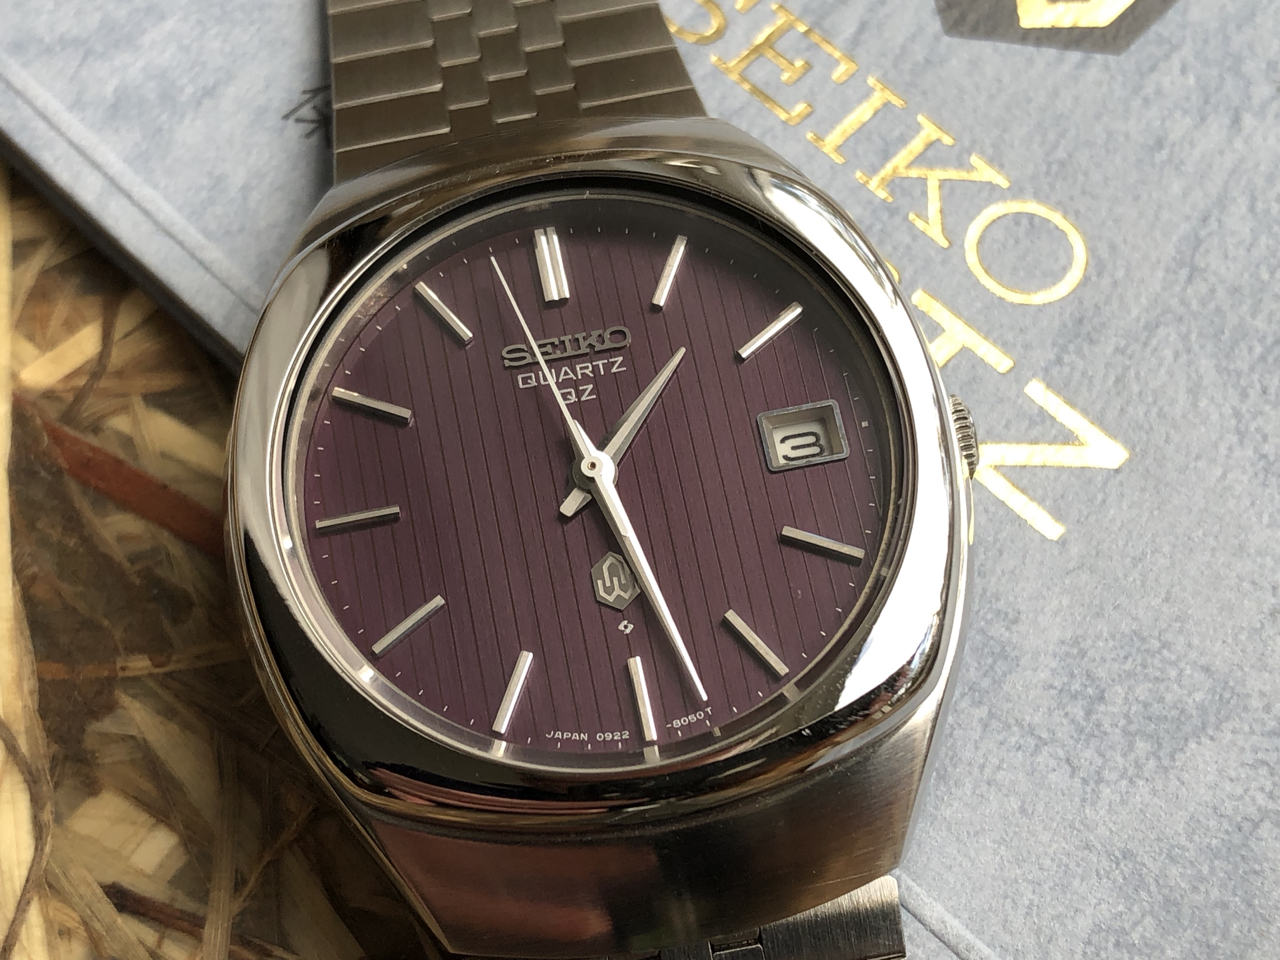 Seiko Quartz QZ 0922-8050 (Sold) - Mint condition with papers